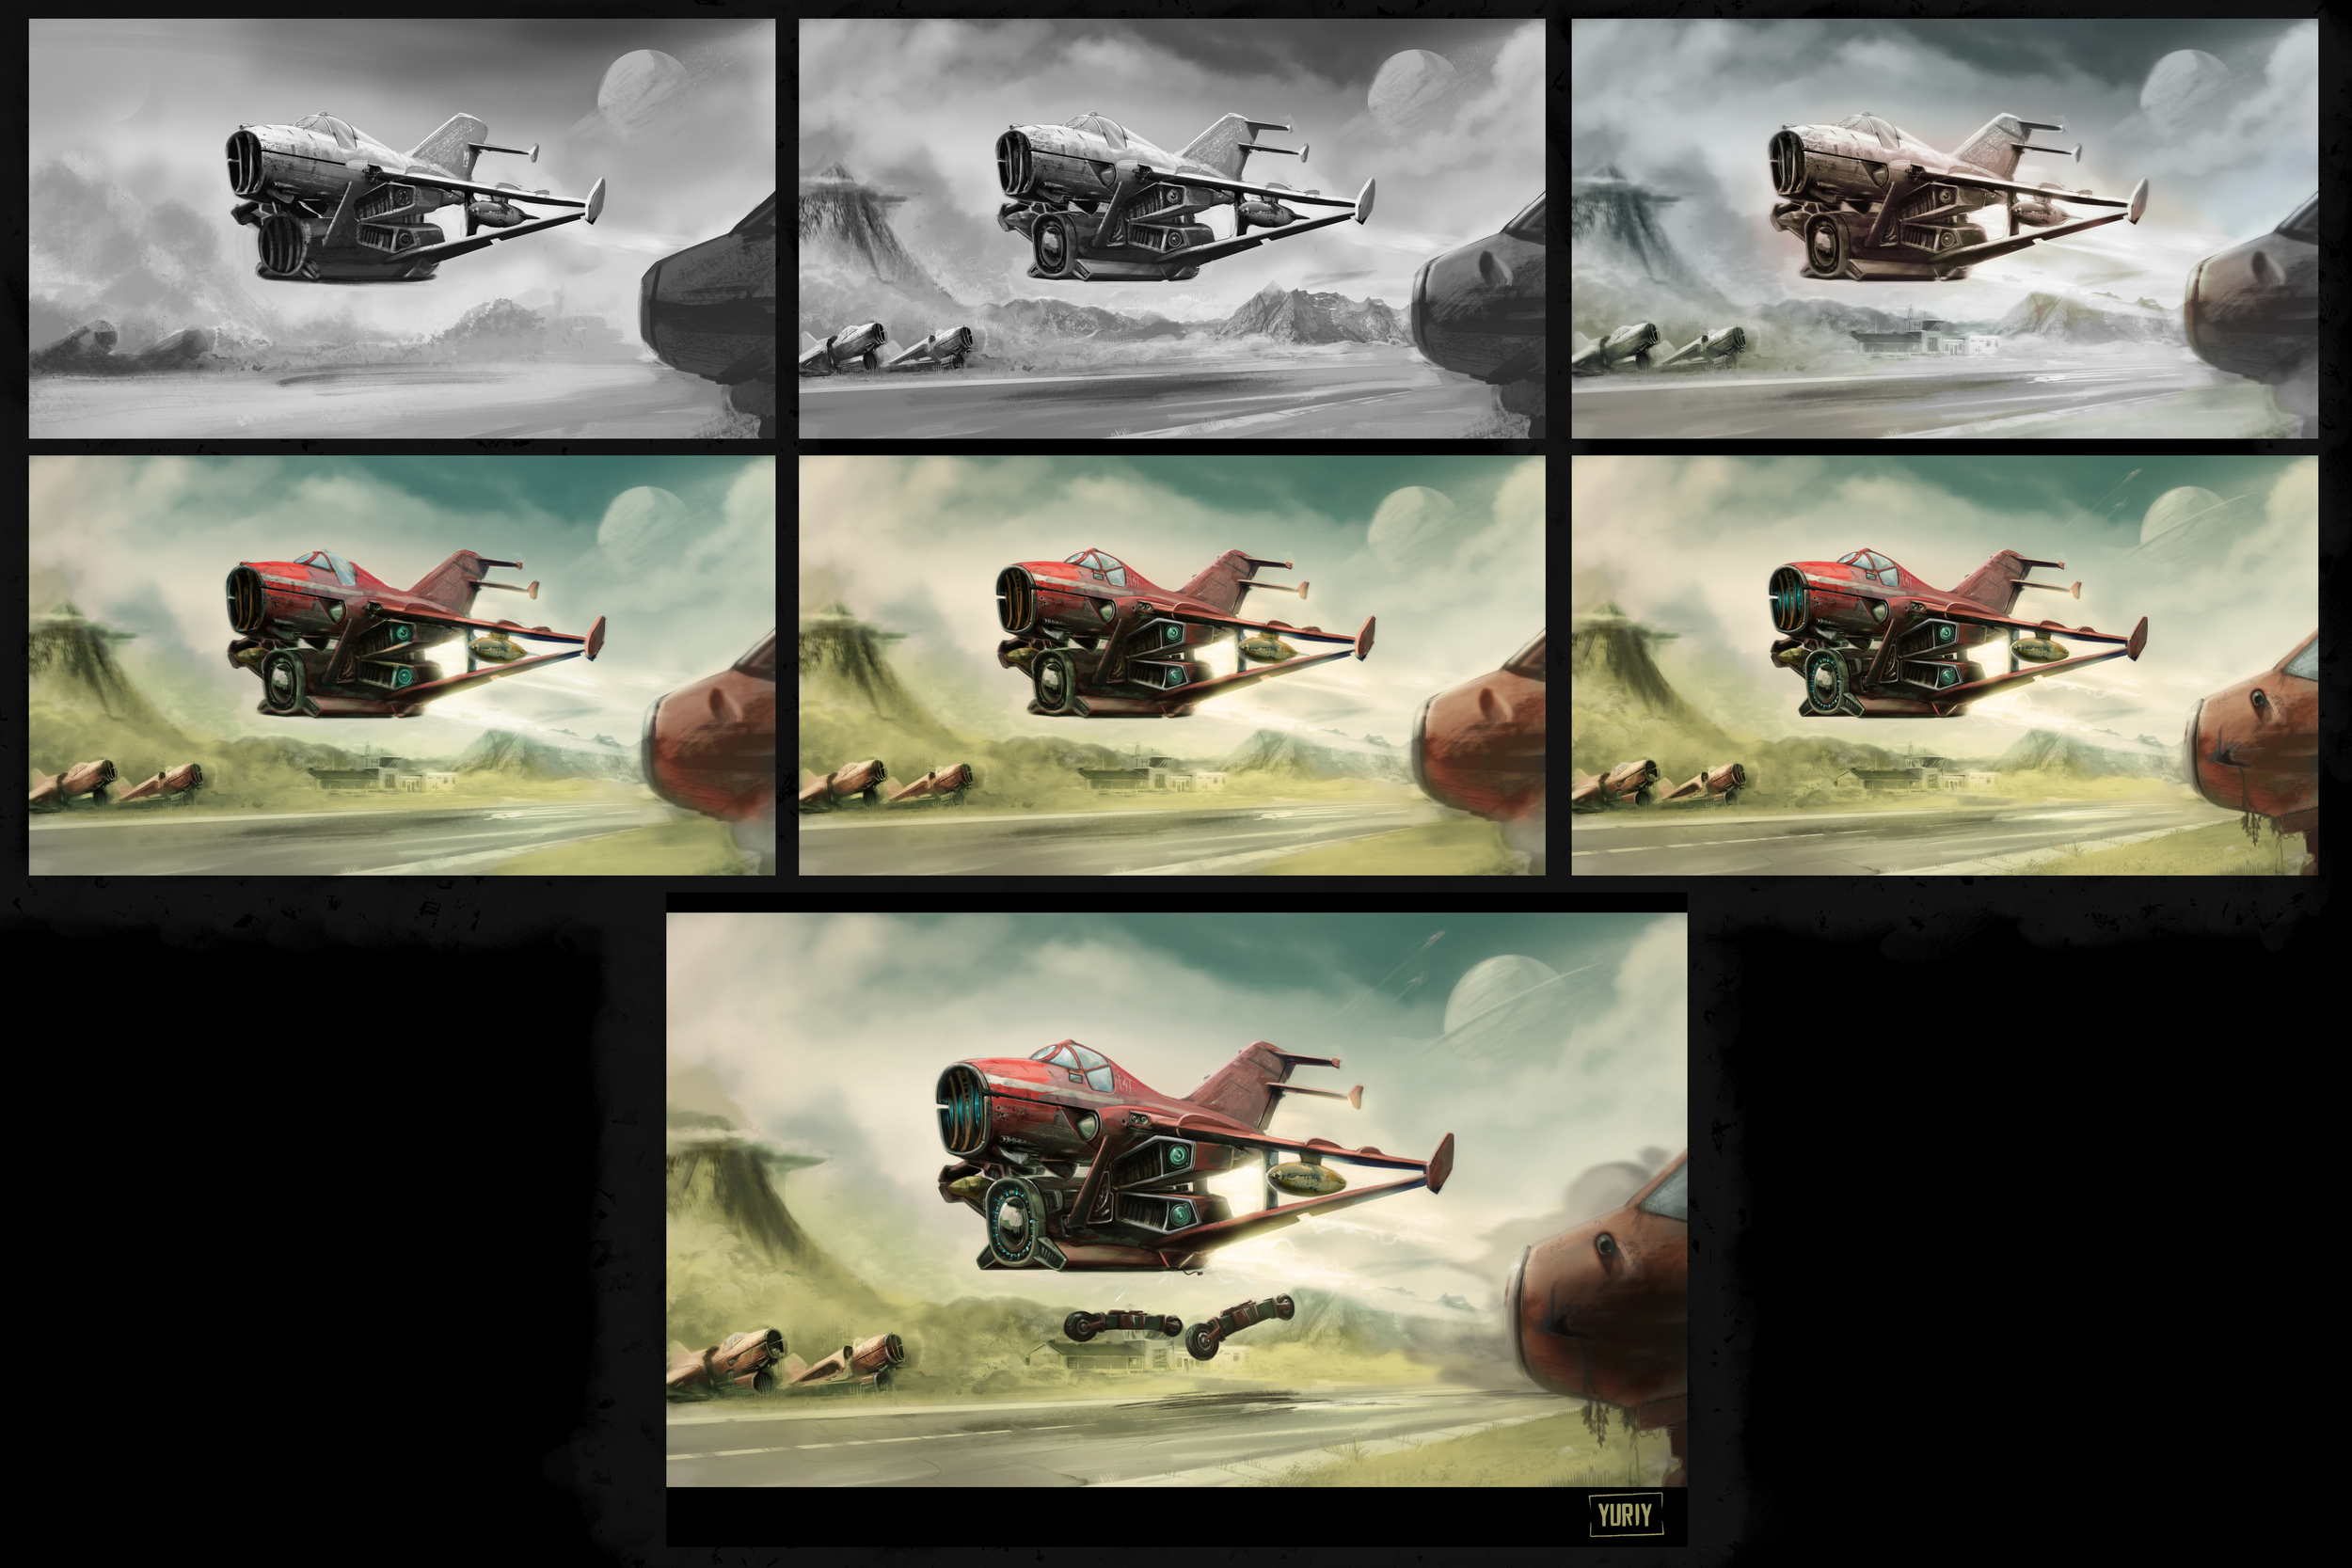 Rocket-Powered Aircraft - Stages of Development